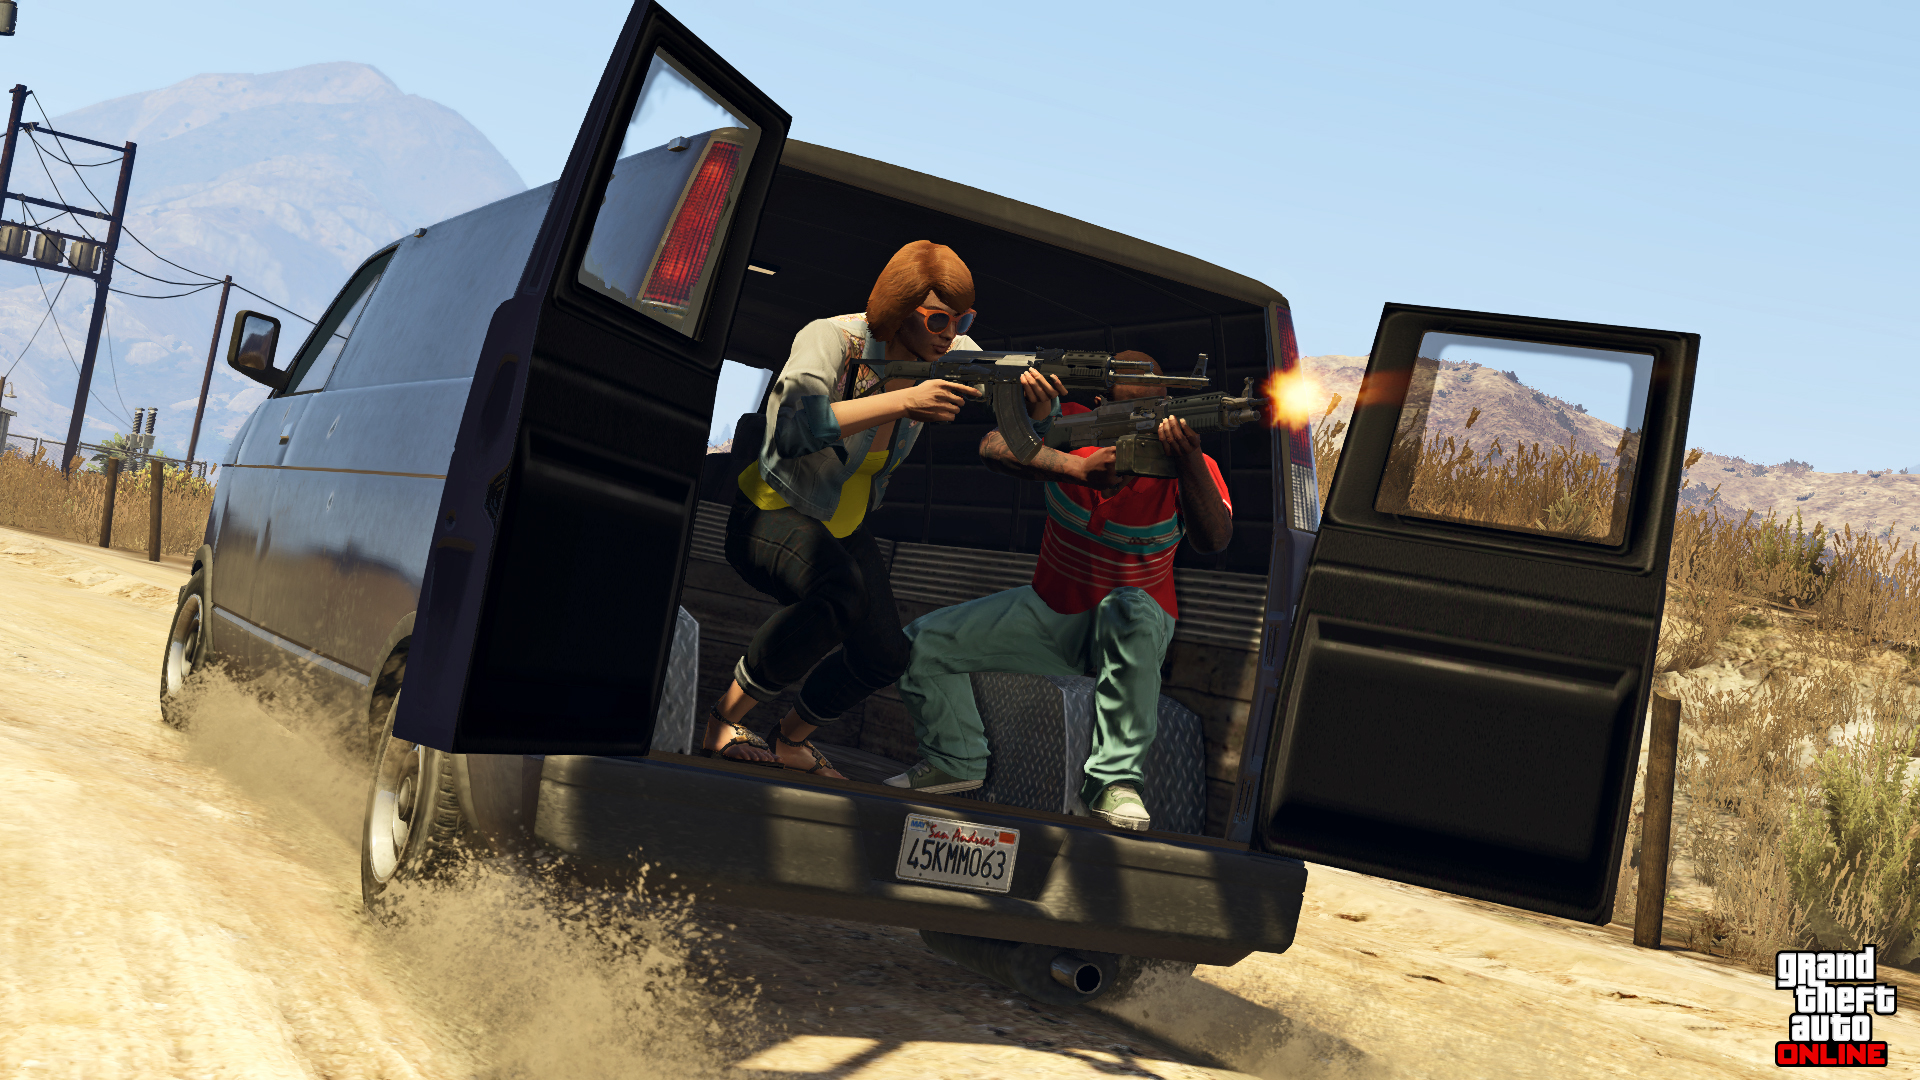 GTA Online - will the next gen versions be missing a heist?